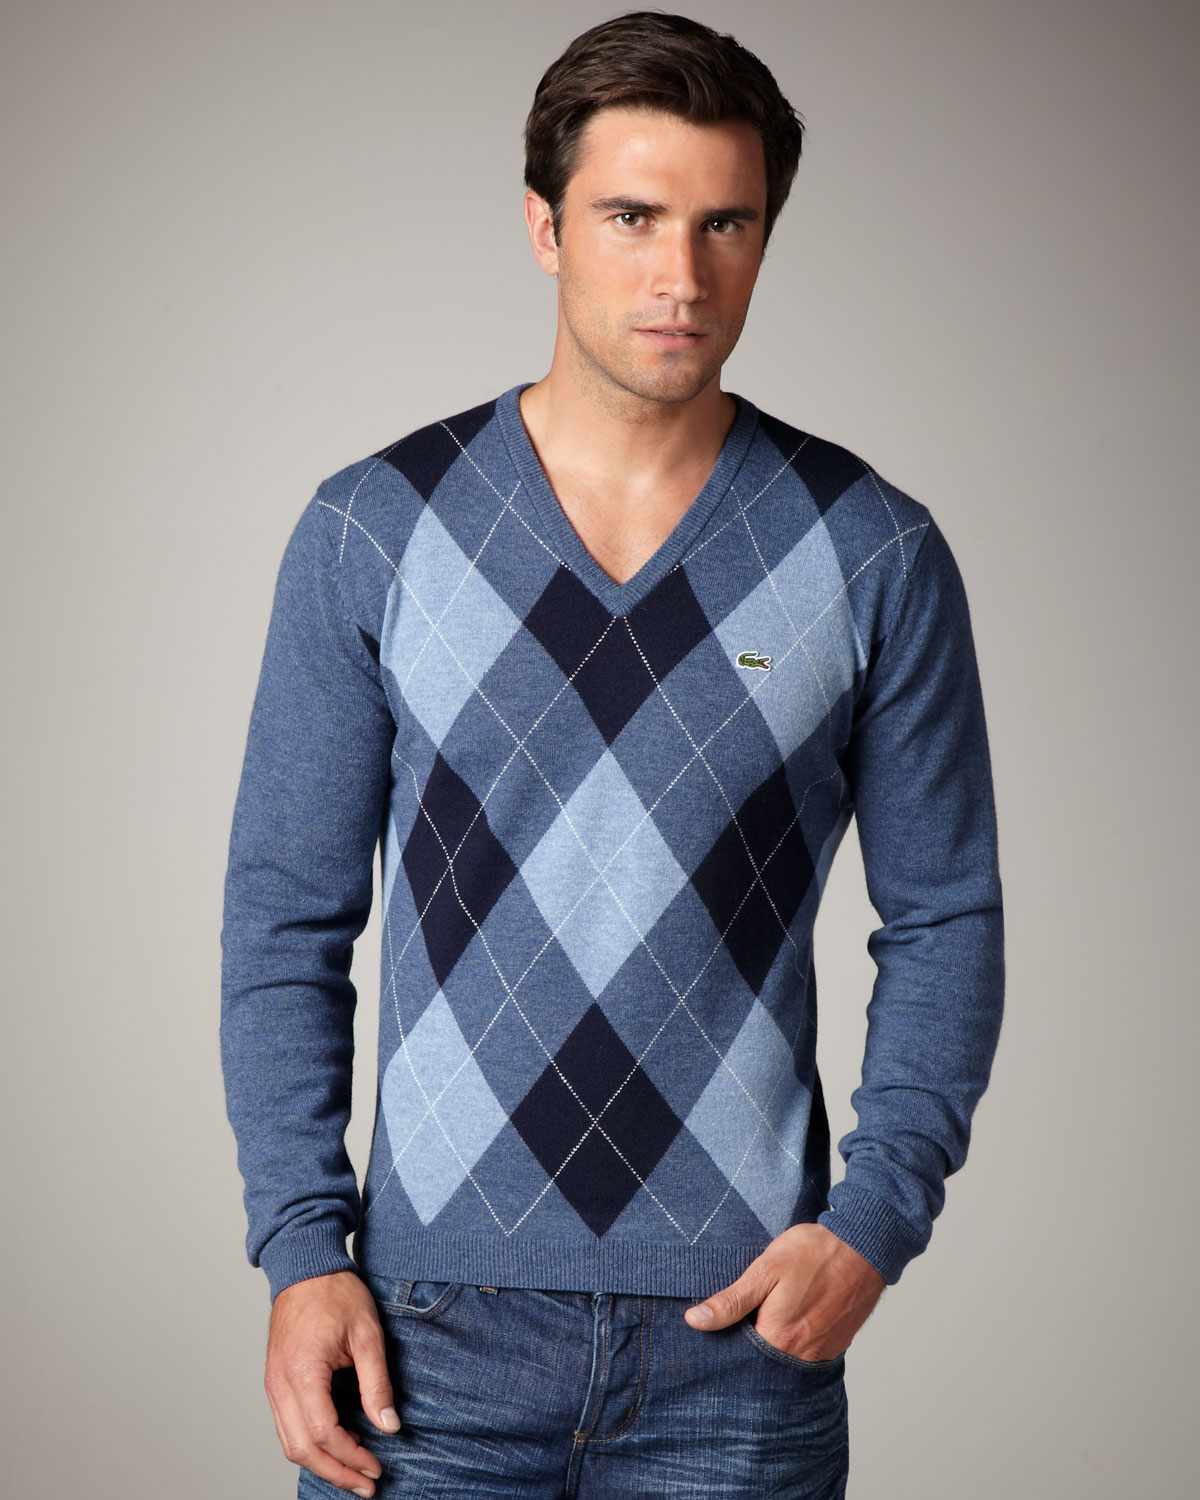 How to look good in the argyle sweater